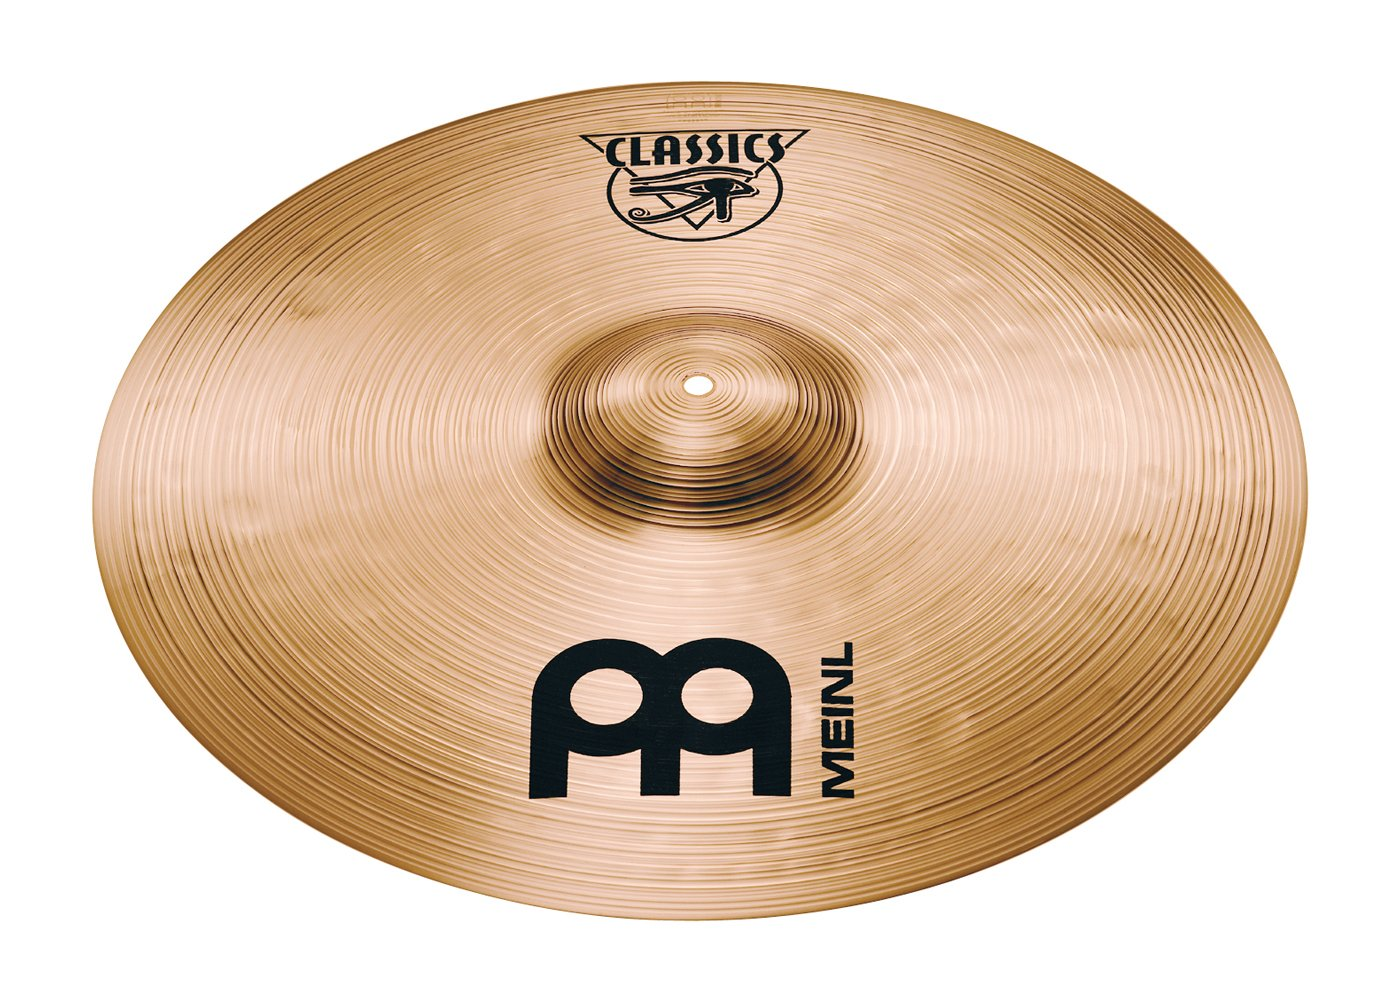 Meinl 22'' Medium Ride Cymbal - Classics Traditional - Made in Germany, 2-YEAR WARRANTY (C22MR) by Meinl Cymbals